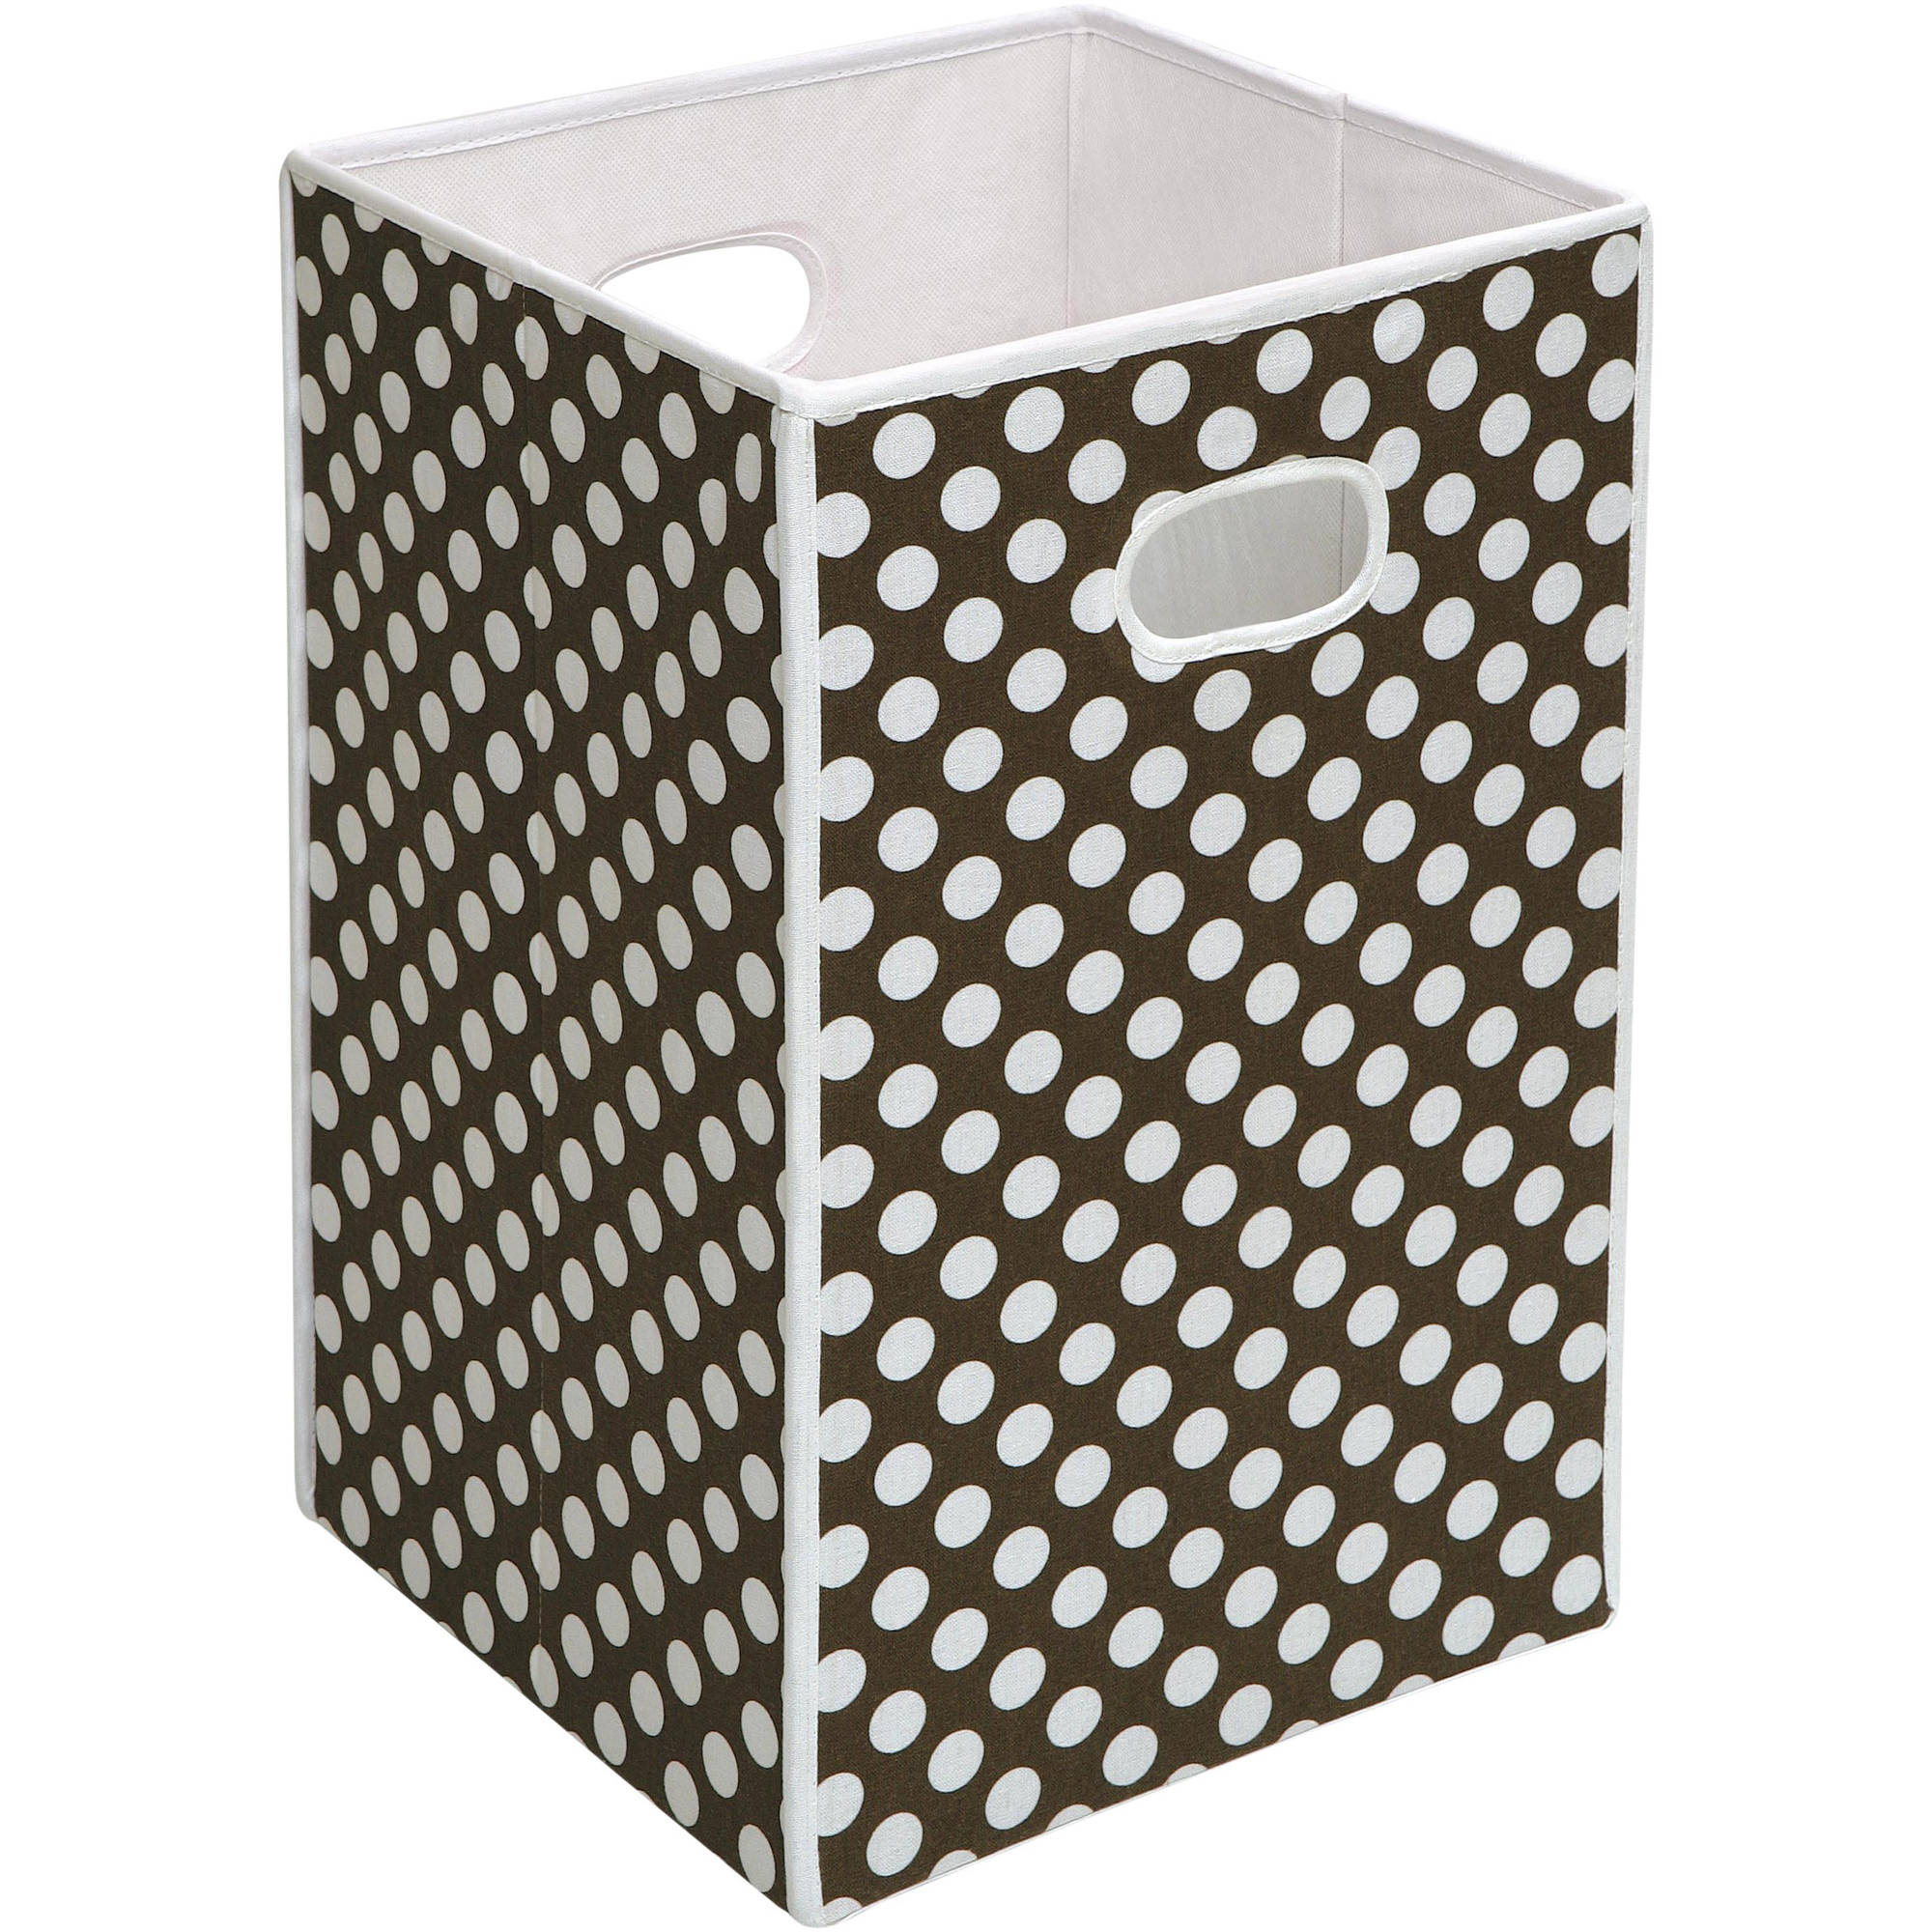 Badger Basket Folding Hamper Storage Bin, Brown with White Polka Dots by Badger Basket